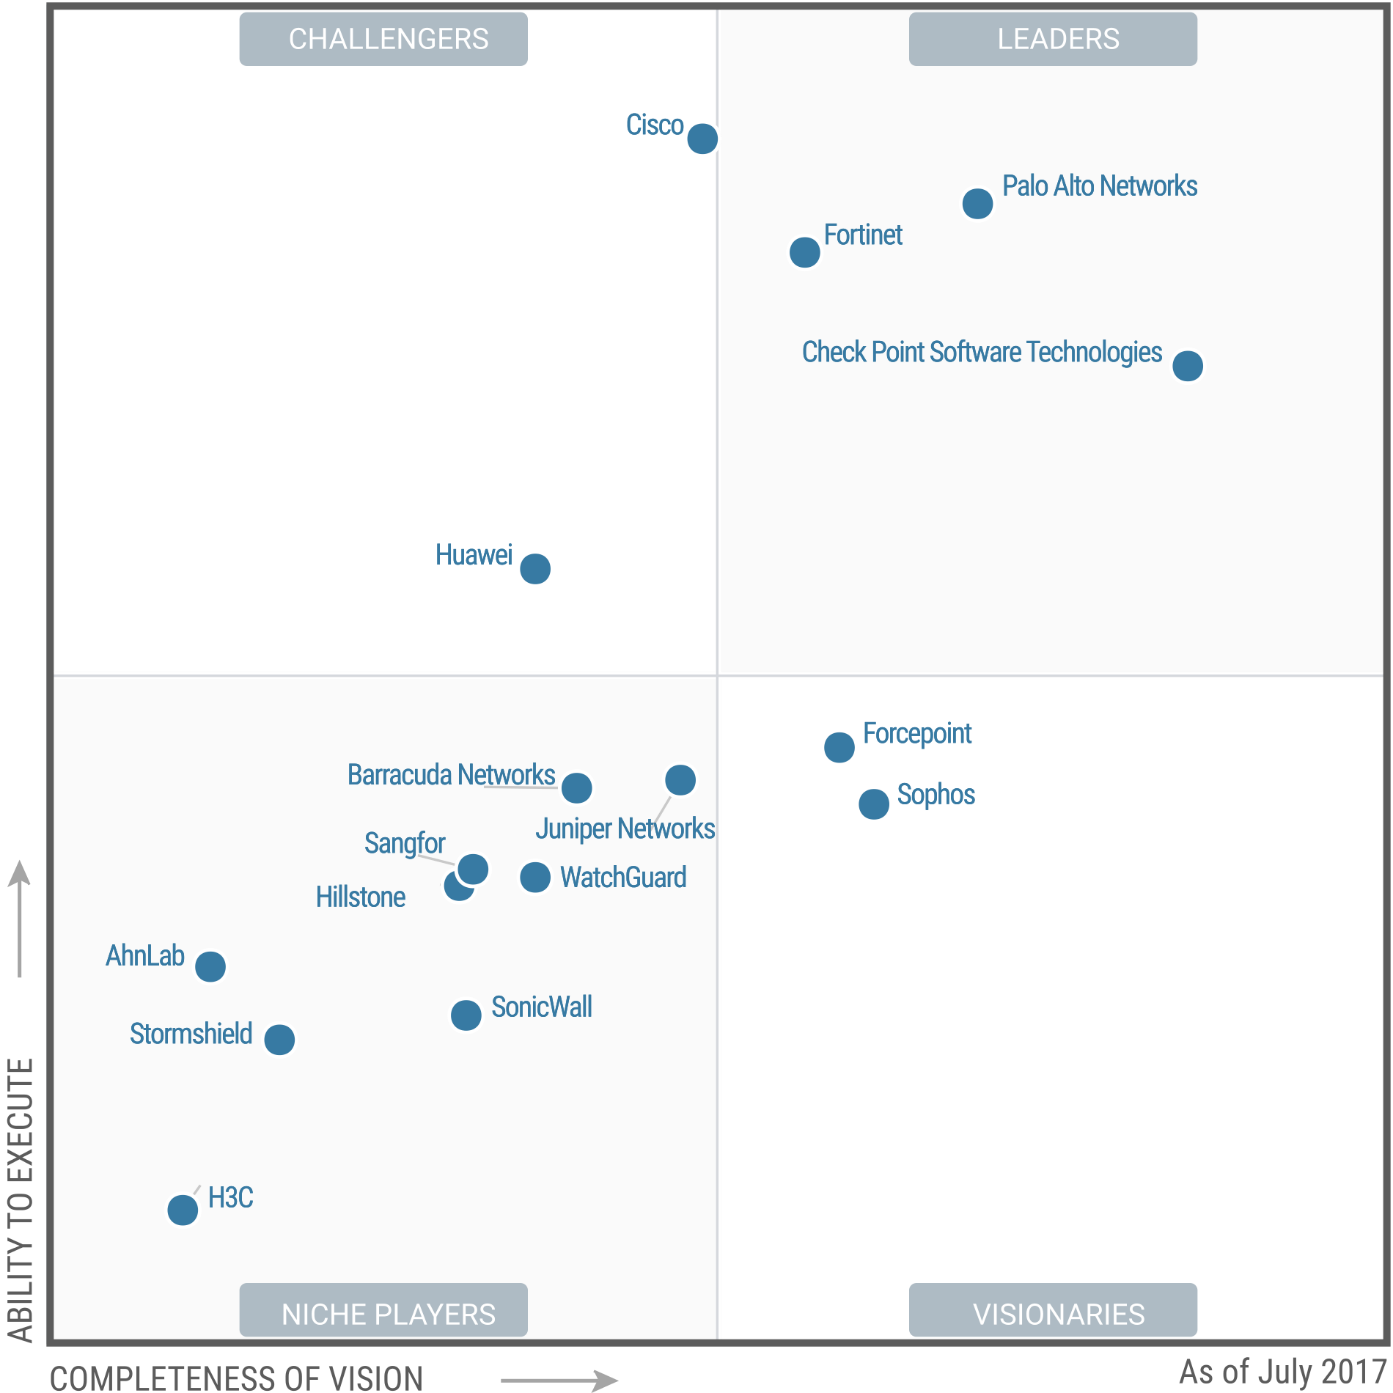 Forcepoint Recognized As A Visionary In Gartner Magic